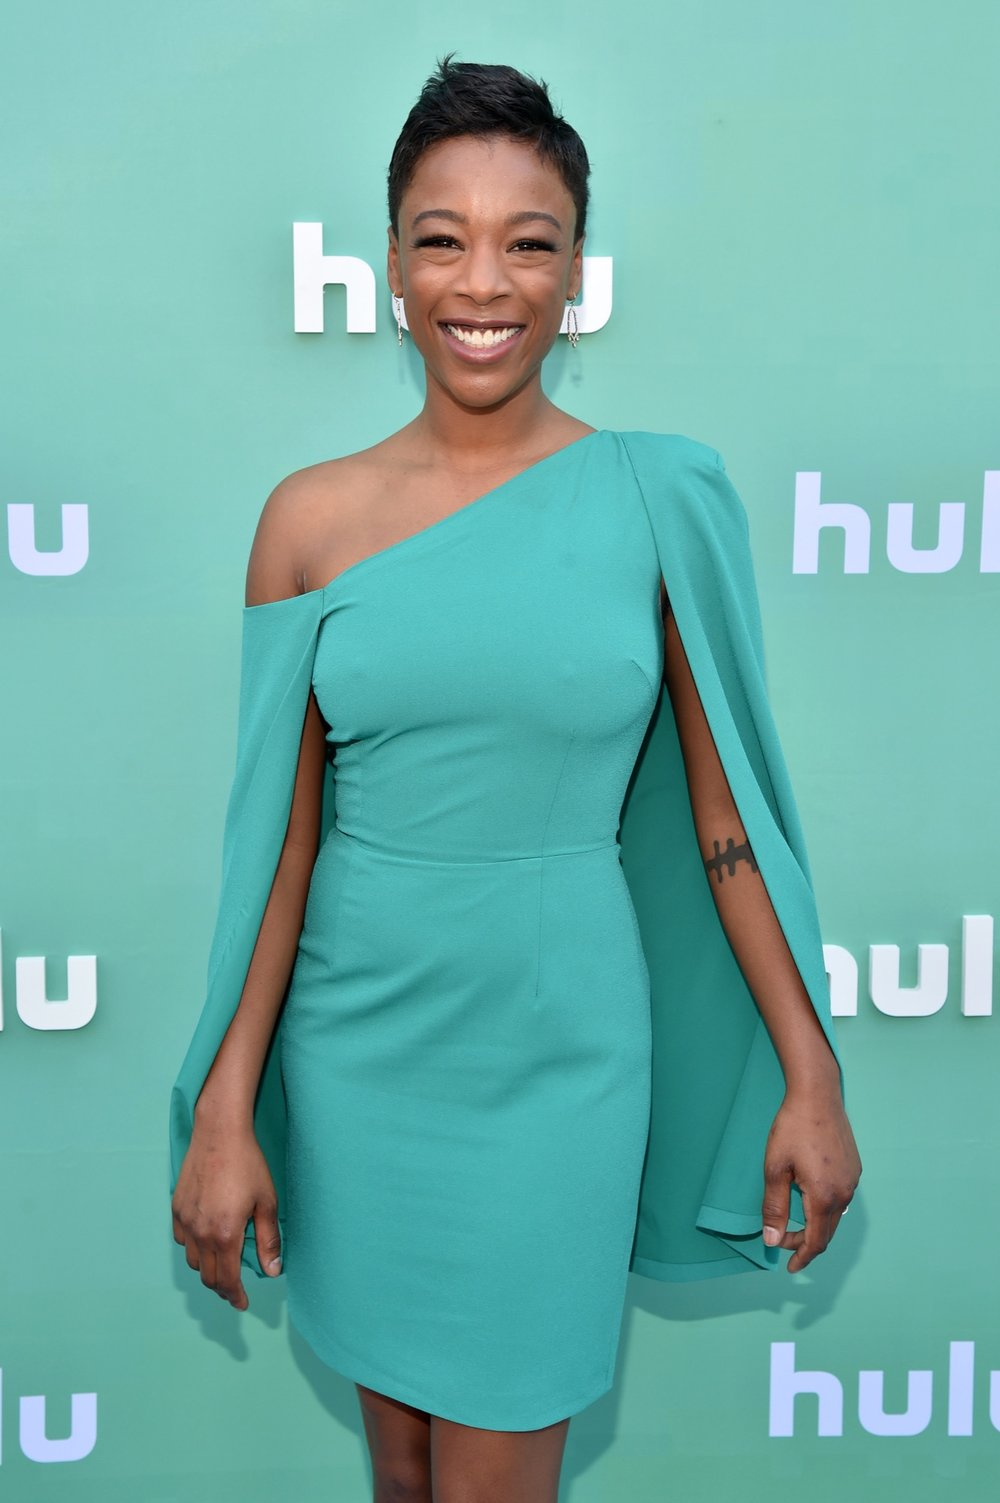 NEW YORK, NY - MAY 02:  Samira Wiley attends the Hulu Upfront 2018 Brunch at La Sirena on May 2, 2018 in New York City.  (Photo by Bryan Bedder/Getty Images for Hulu) *** Local Caption *** Samira Wiley